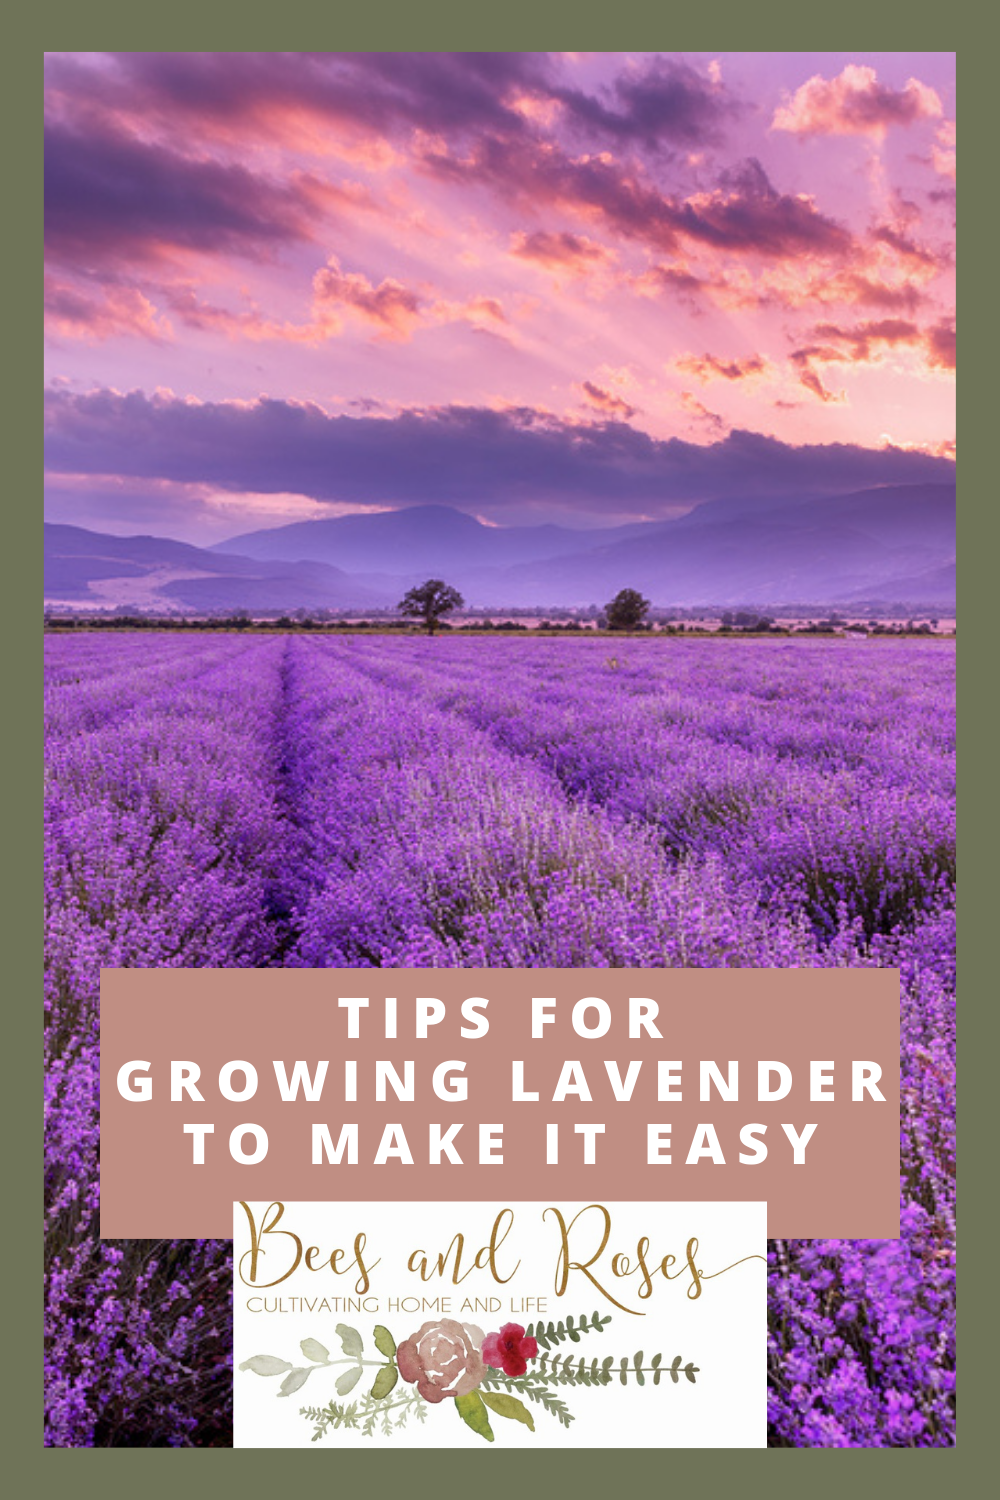 Beesandroses.com teaches all about gardening. Learn how to grow lavender from the best gardeners. These Tips for growing lavender are just what you need for success when growing such a beautiful plant.